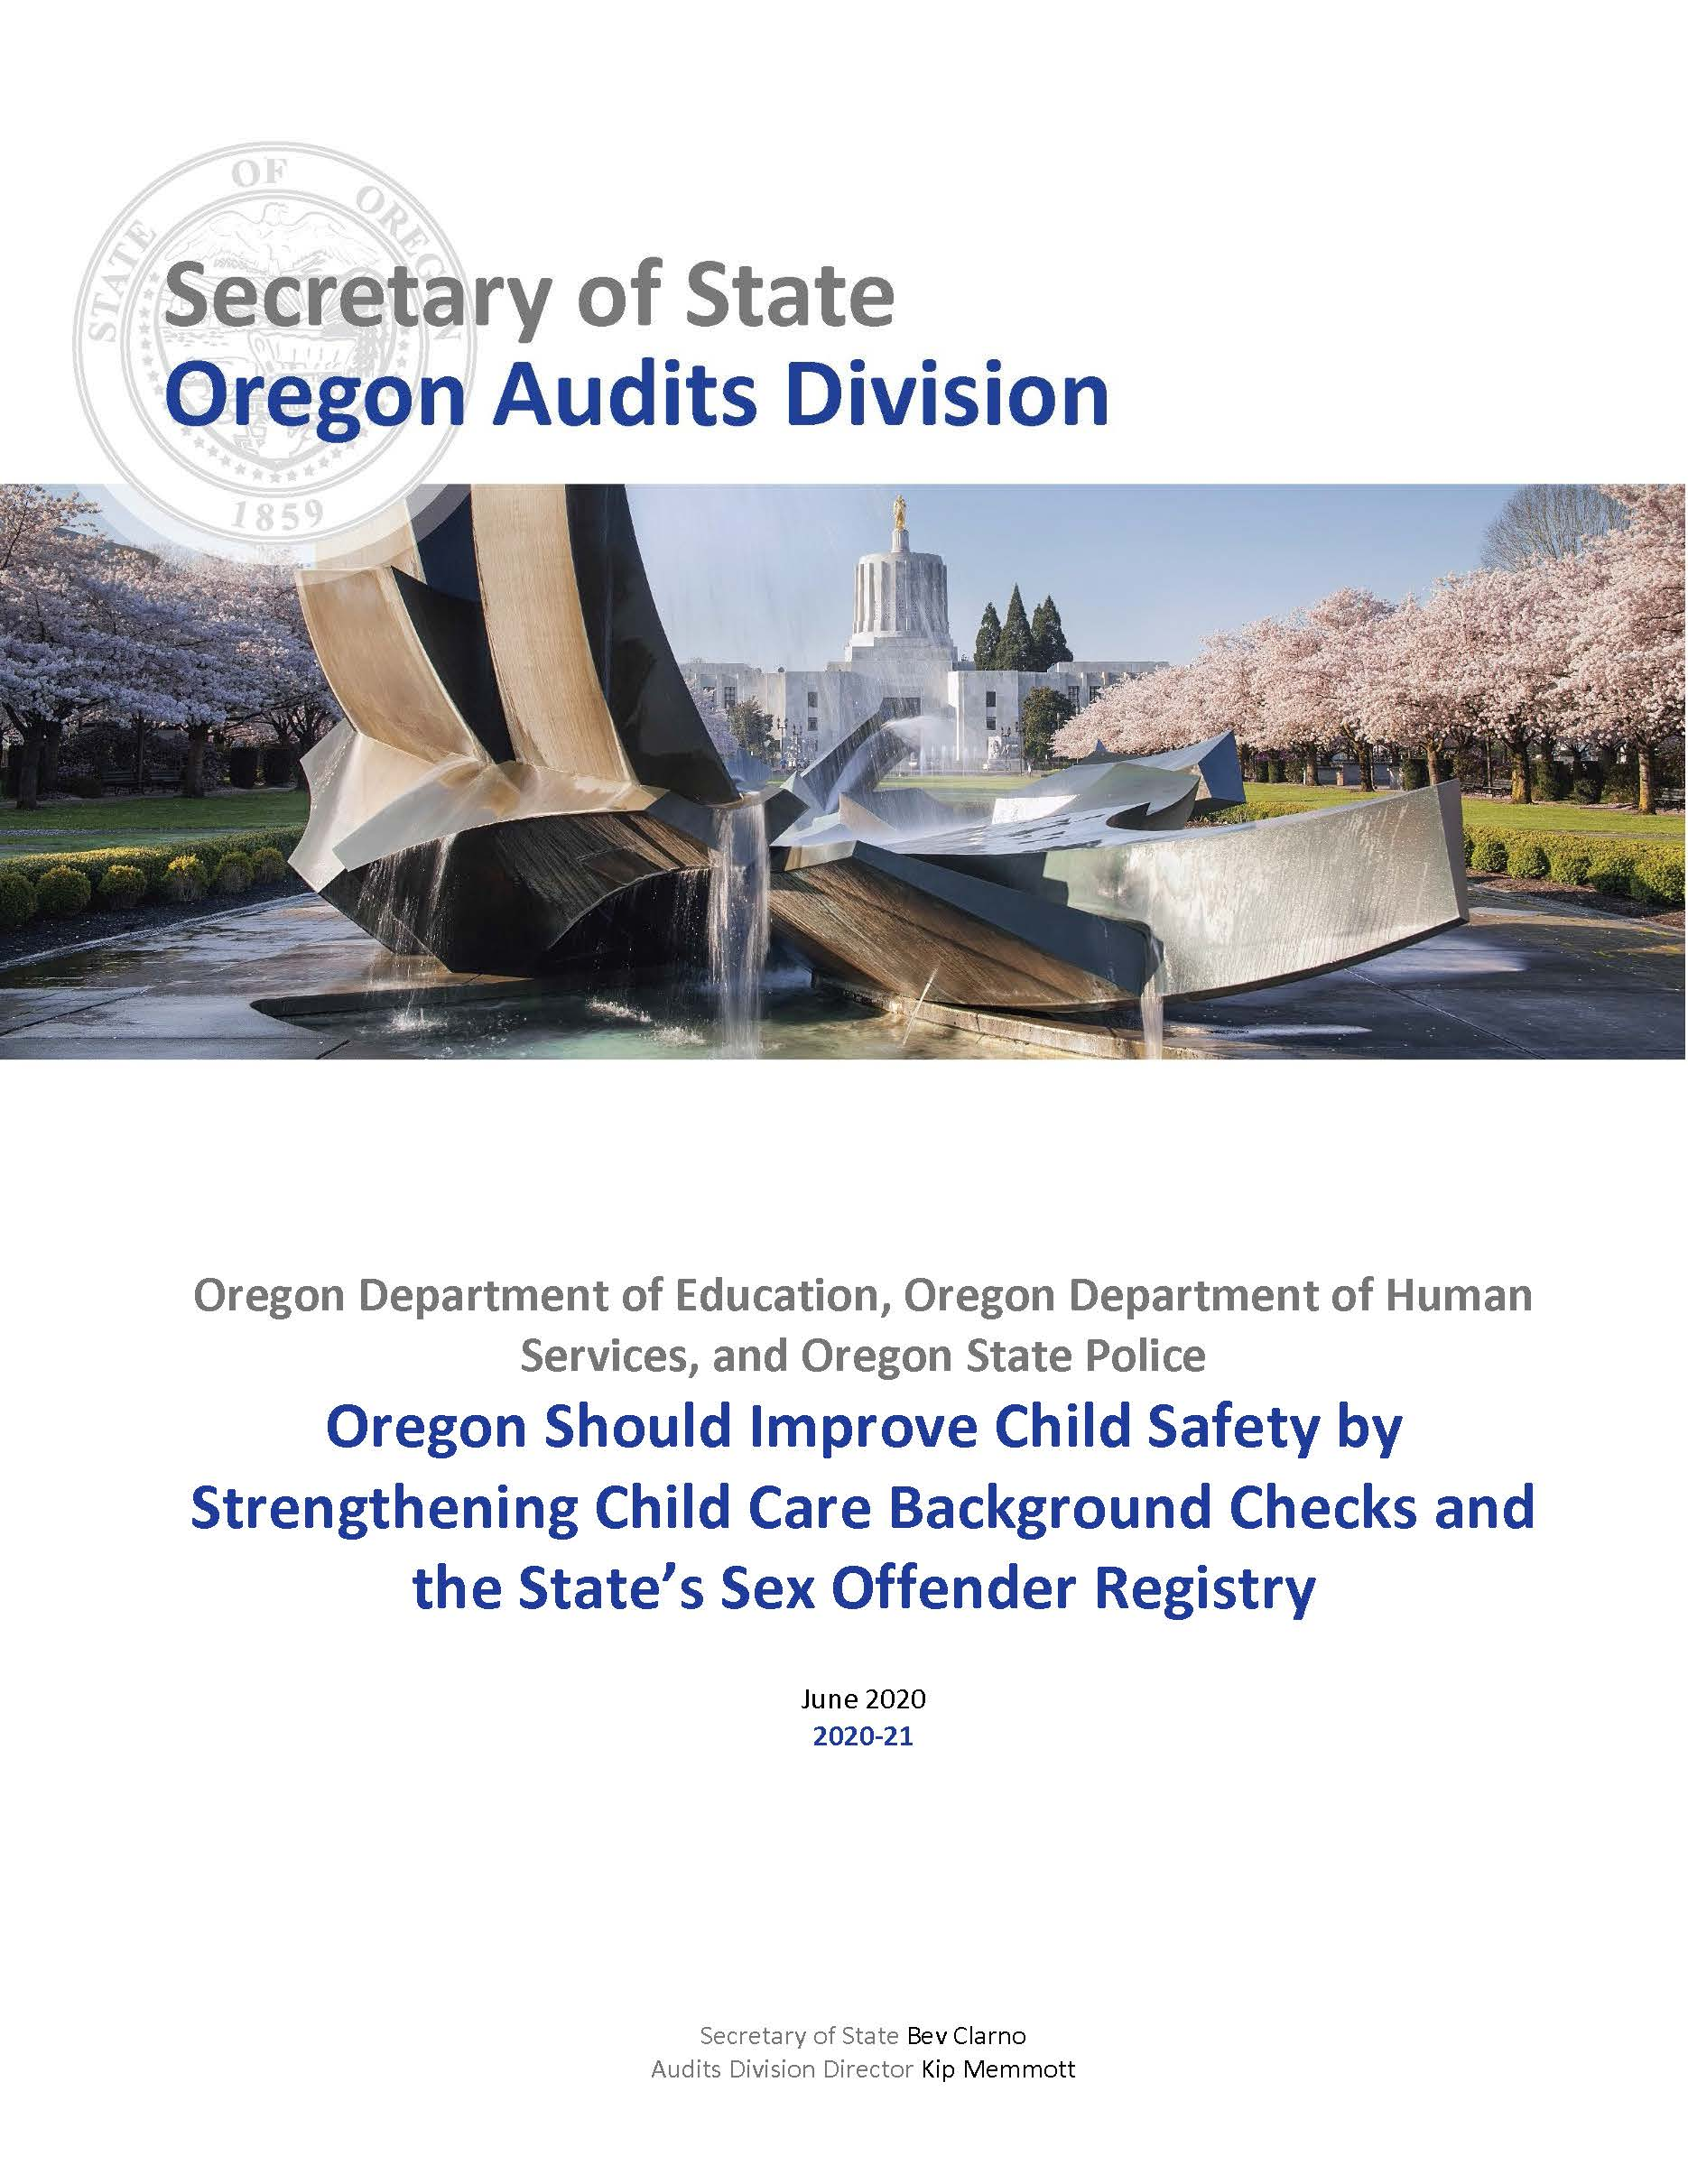 Child care background checks | Read All About It, Oregon!